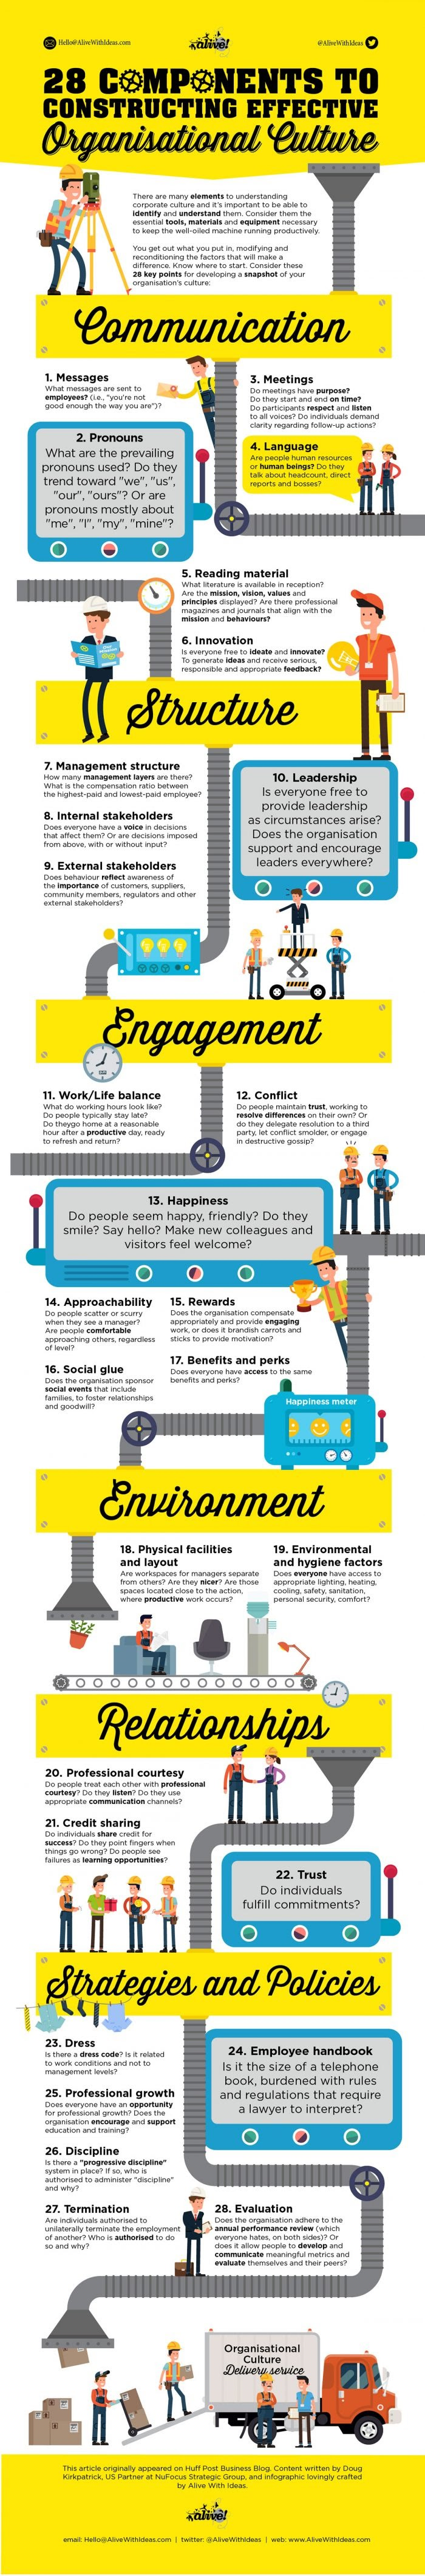 28-components-to-constructing-effective-organisational-culture #infographic